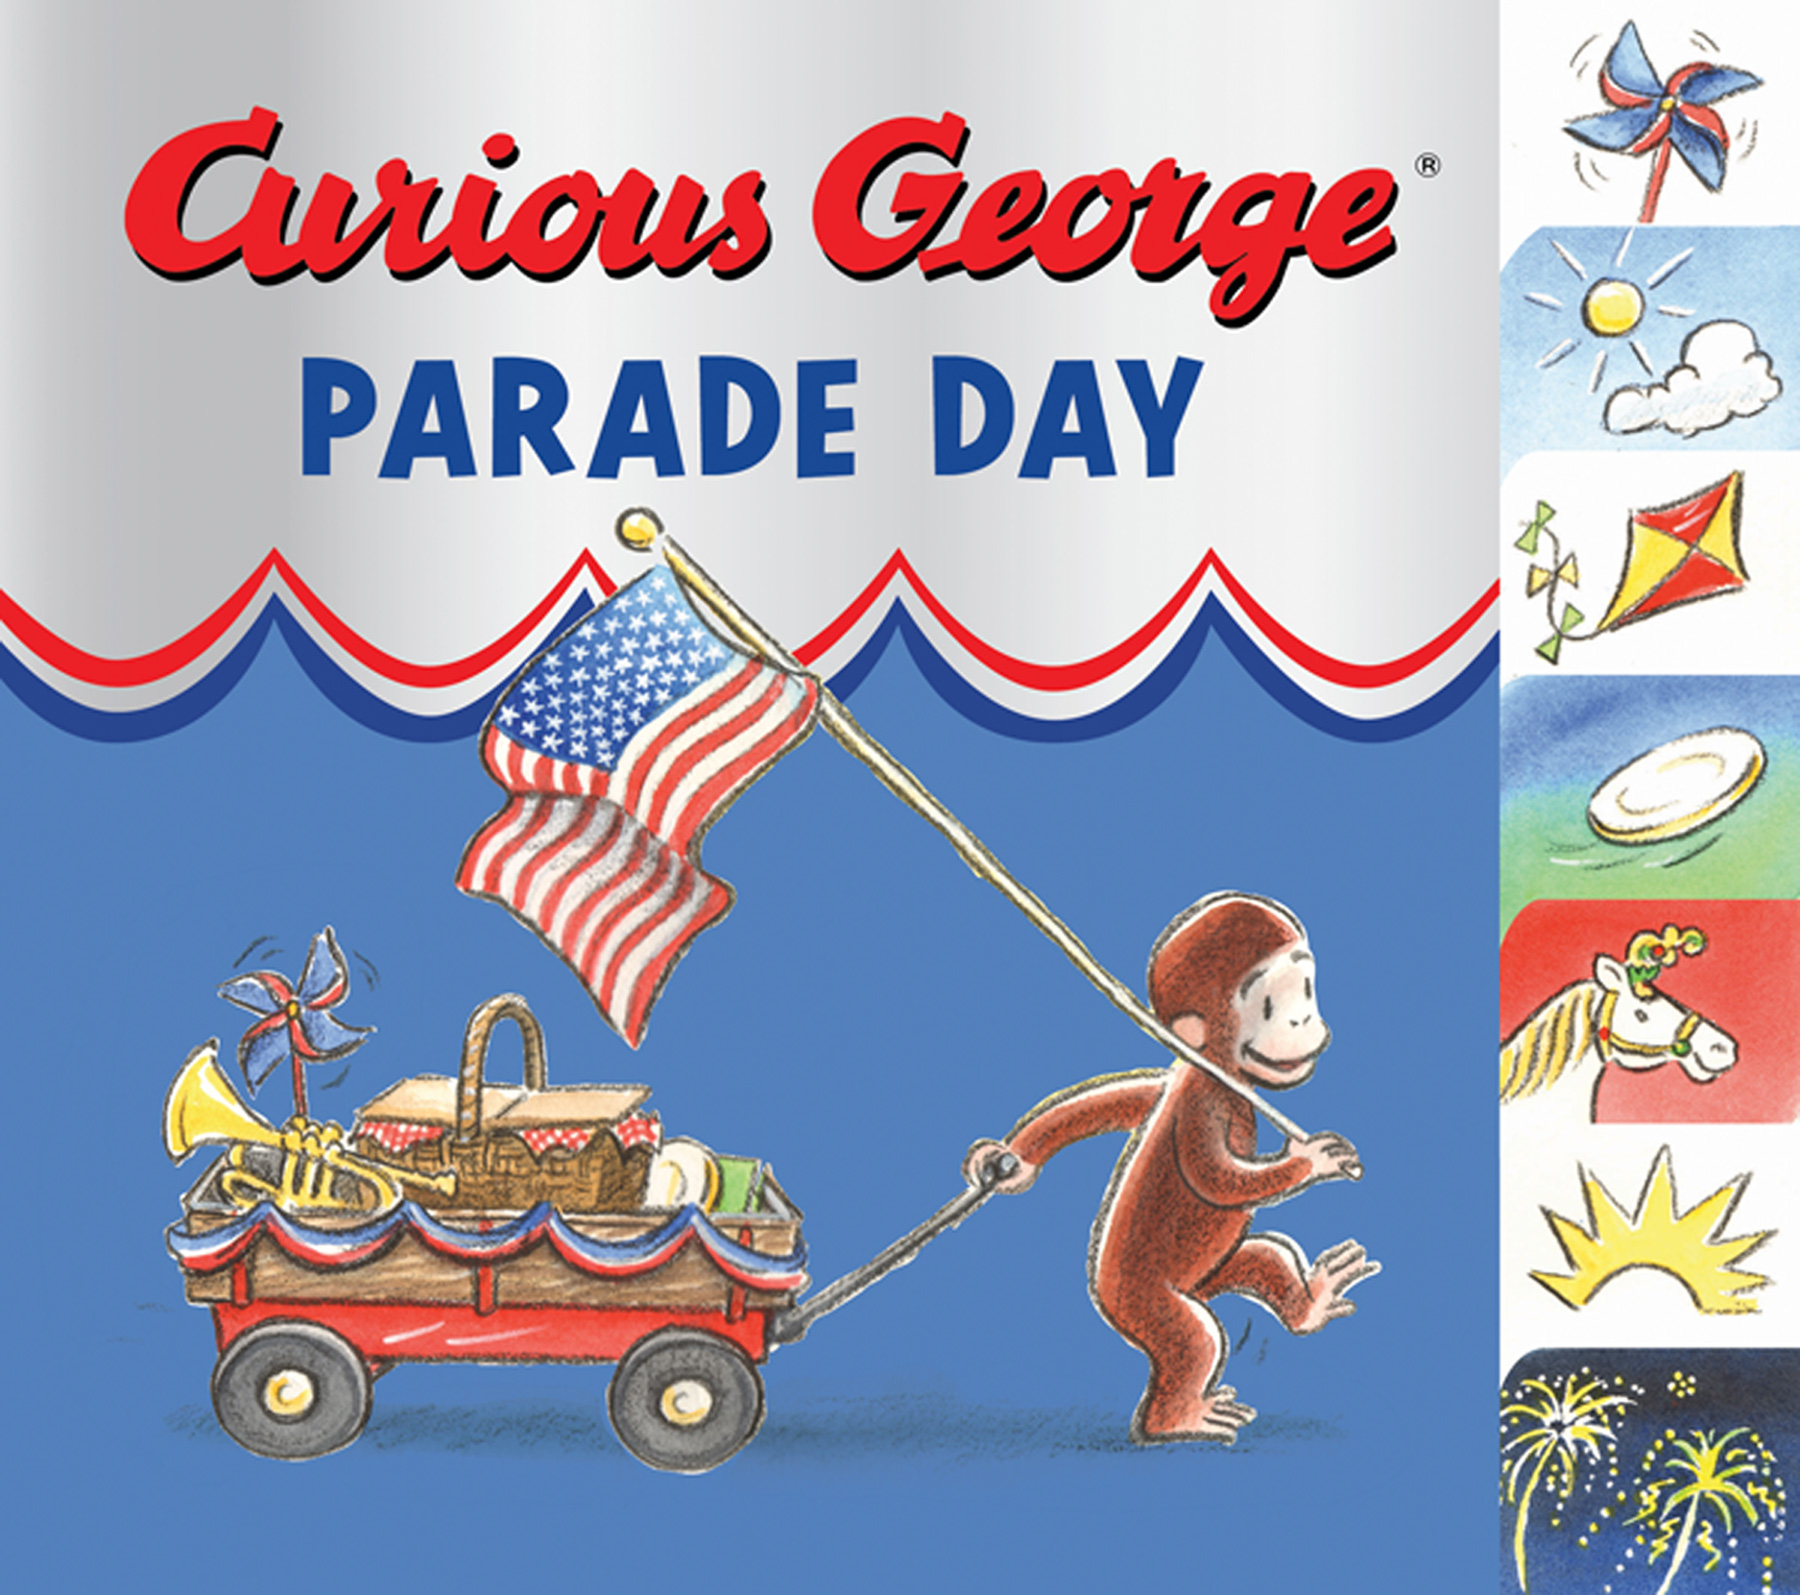 Curious George Parade Day tabbed board book-9780547472829